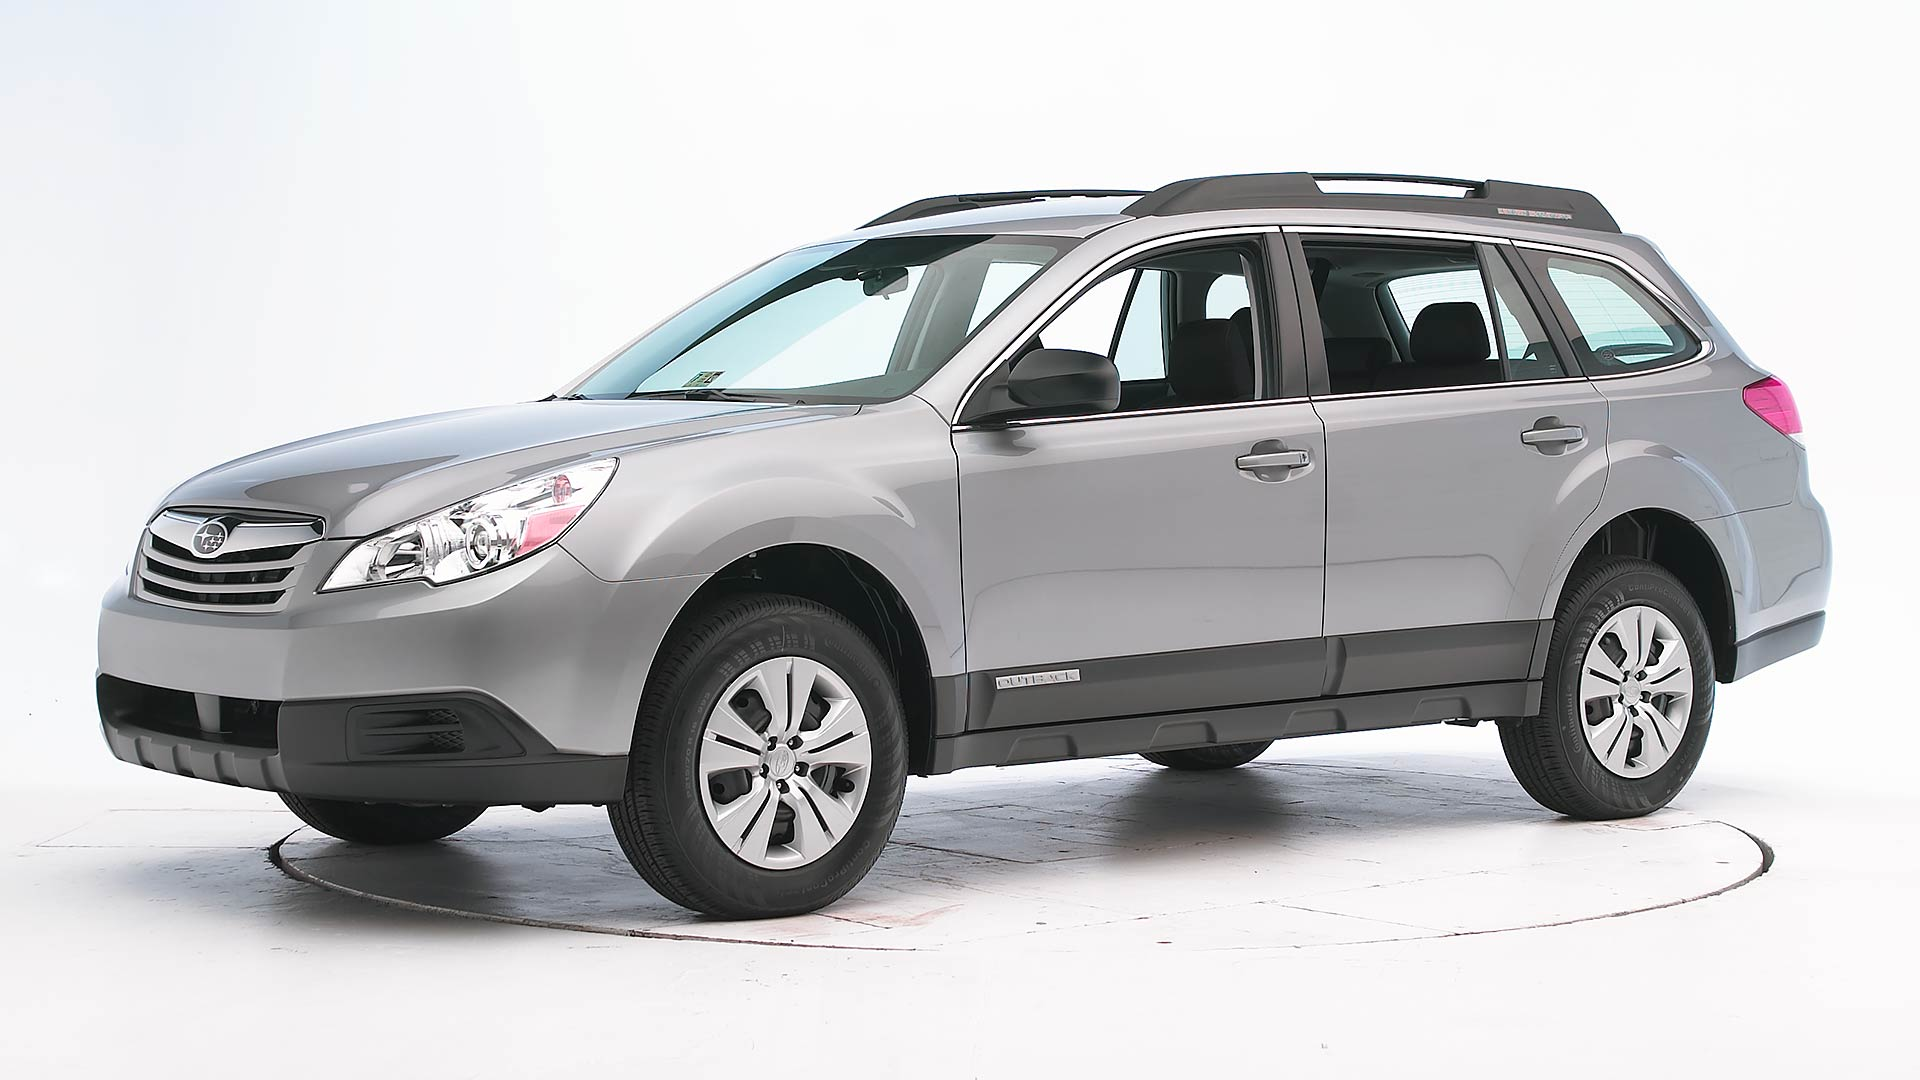 2010 Subaru Outback 4-door wagon